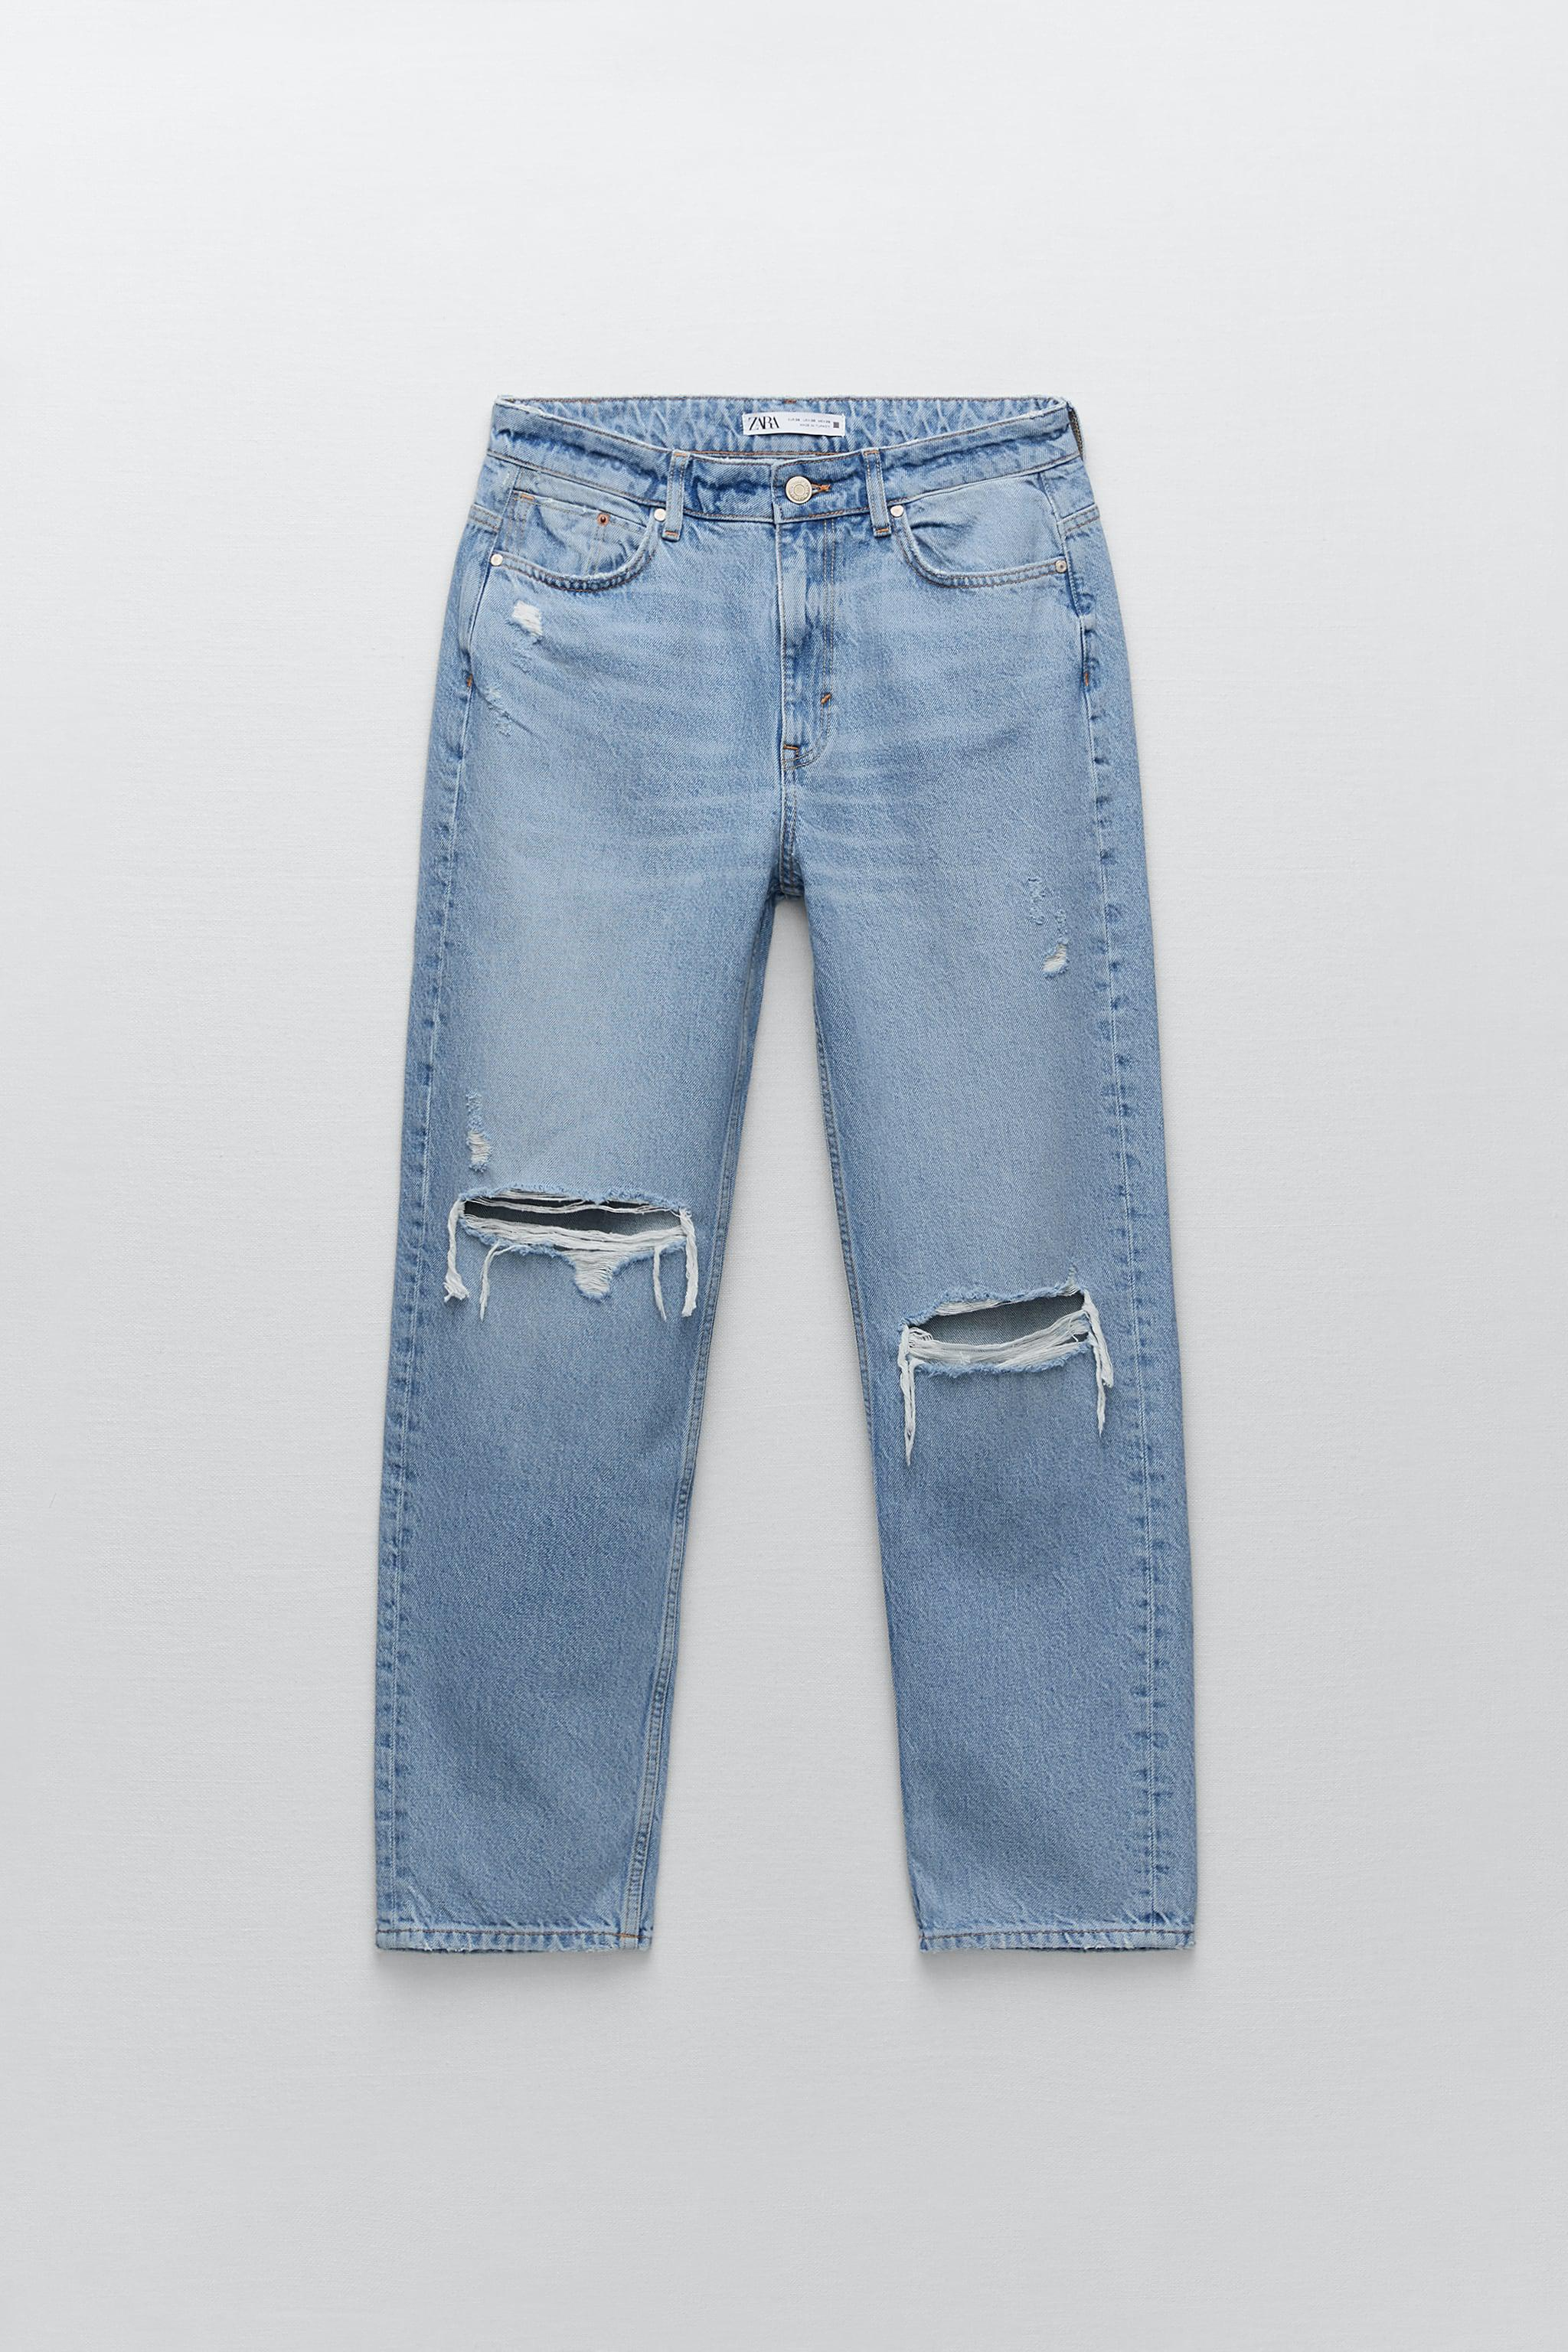 Z1975 RELAXED FIT RIPPED JEANS 7